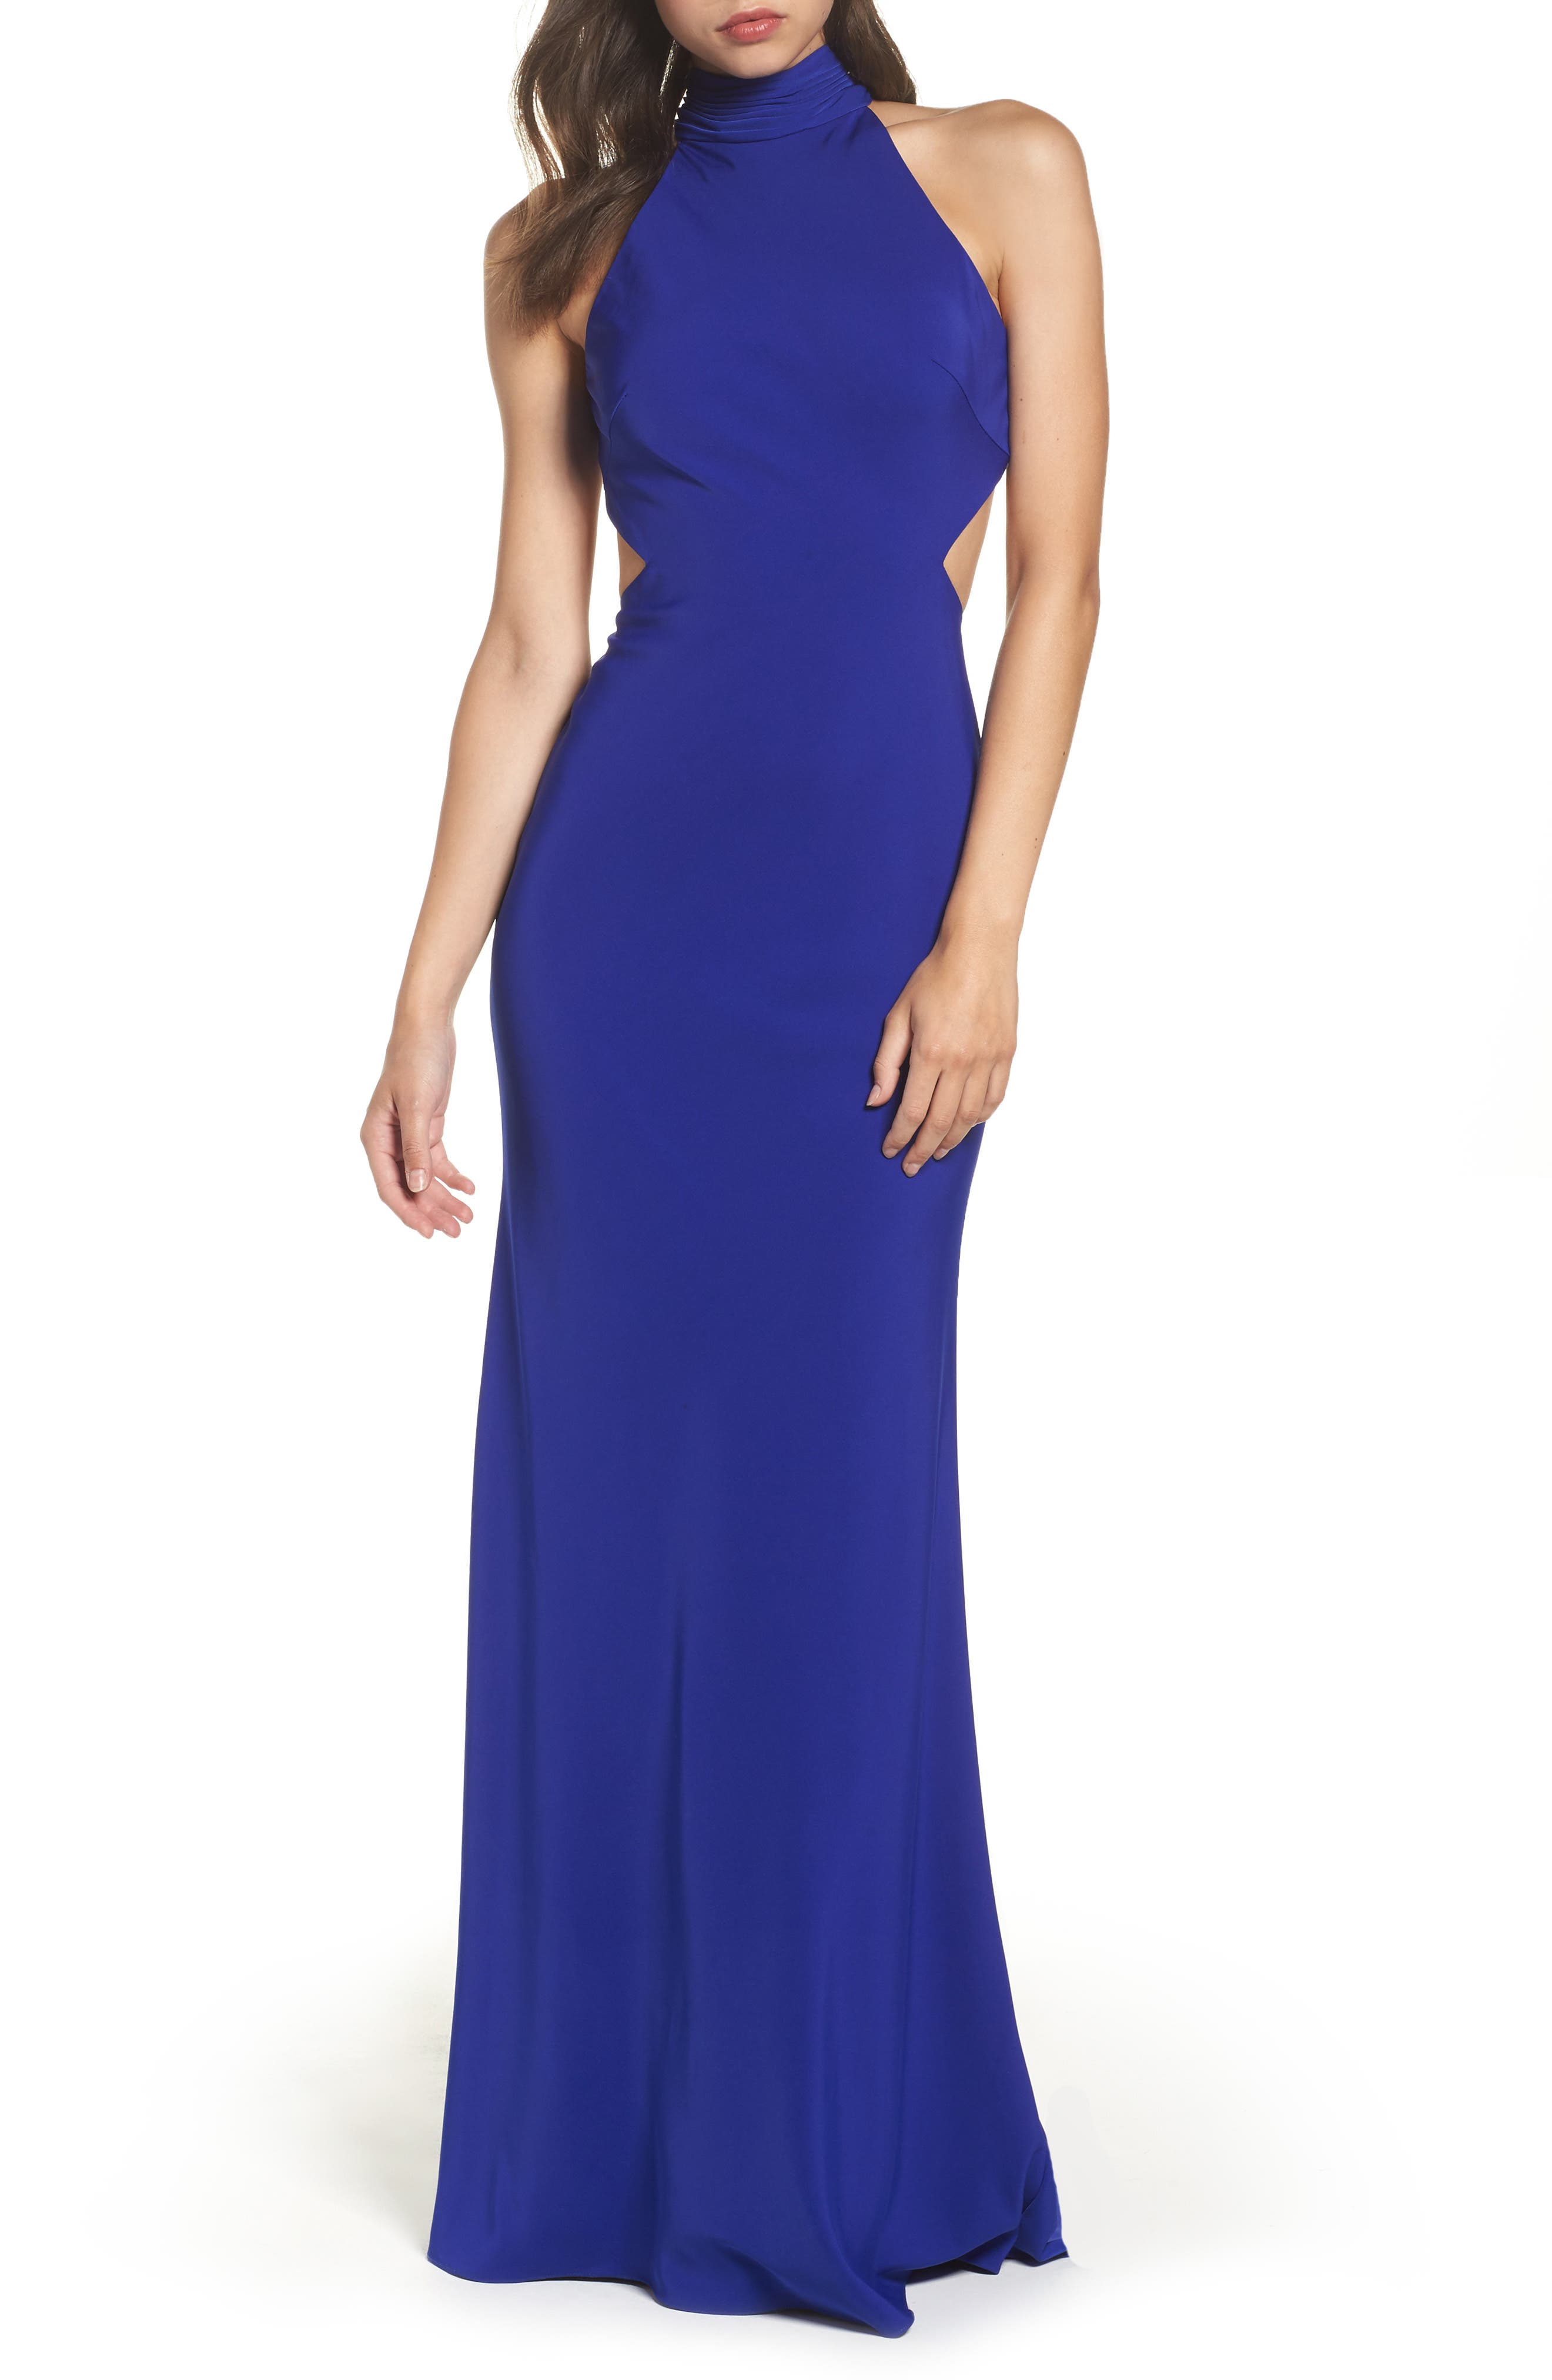 Alternate Image 1 Selected - Mac Duggal Open Back Halter Gown